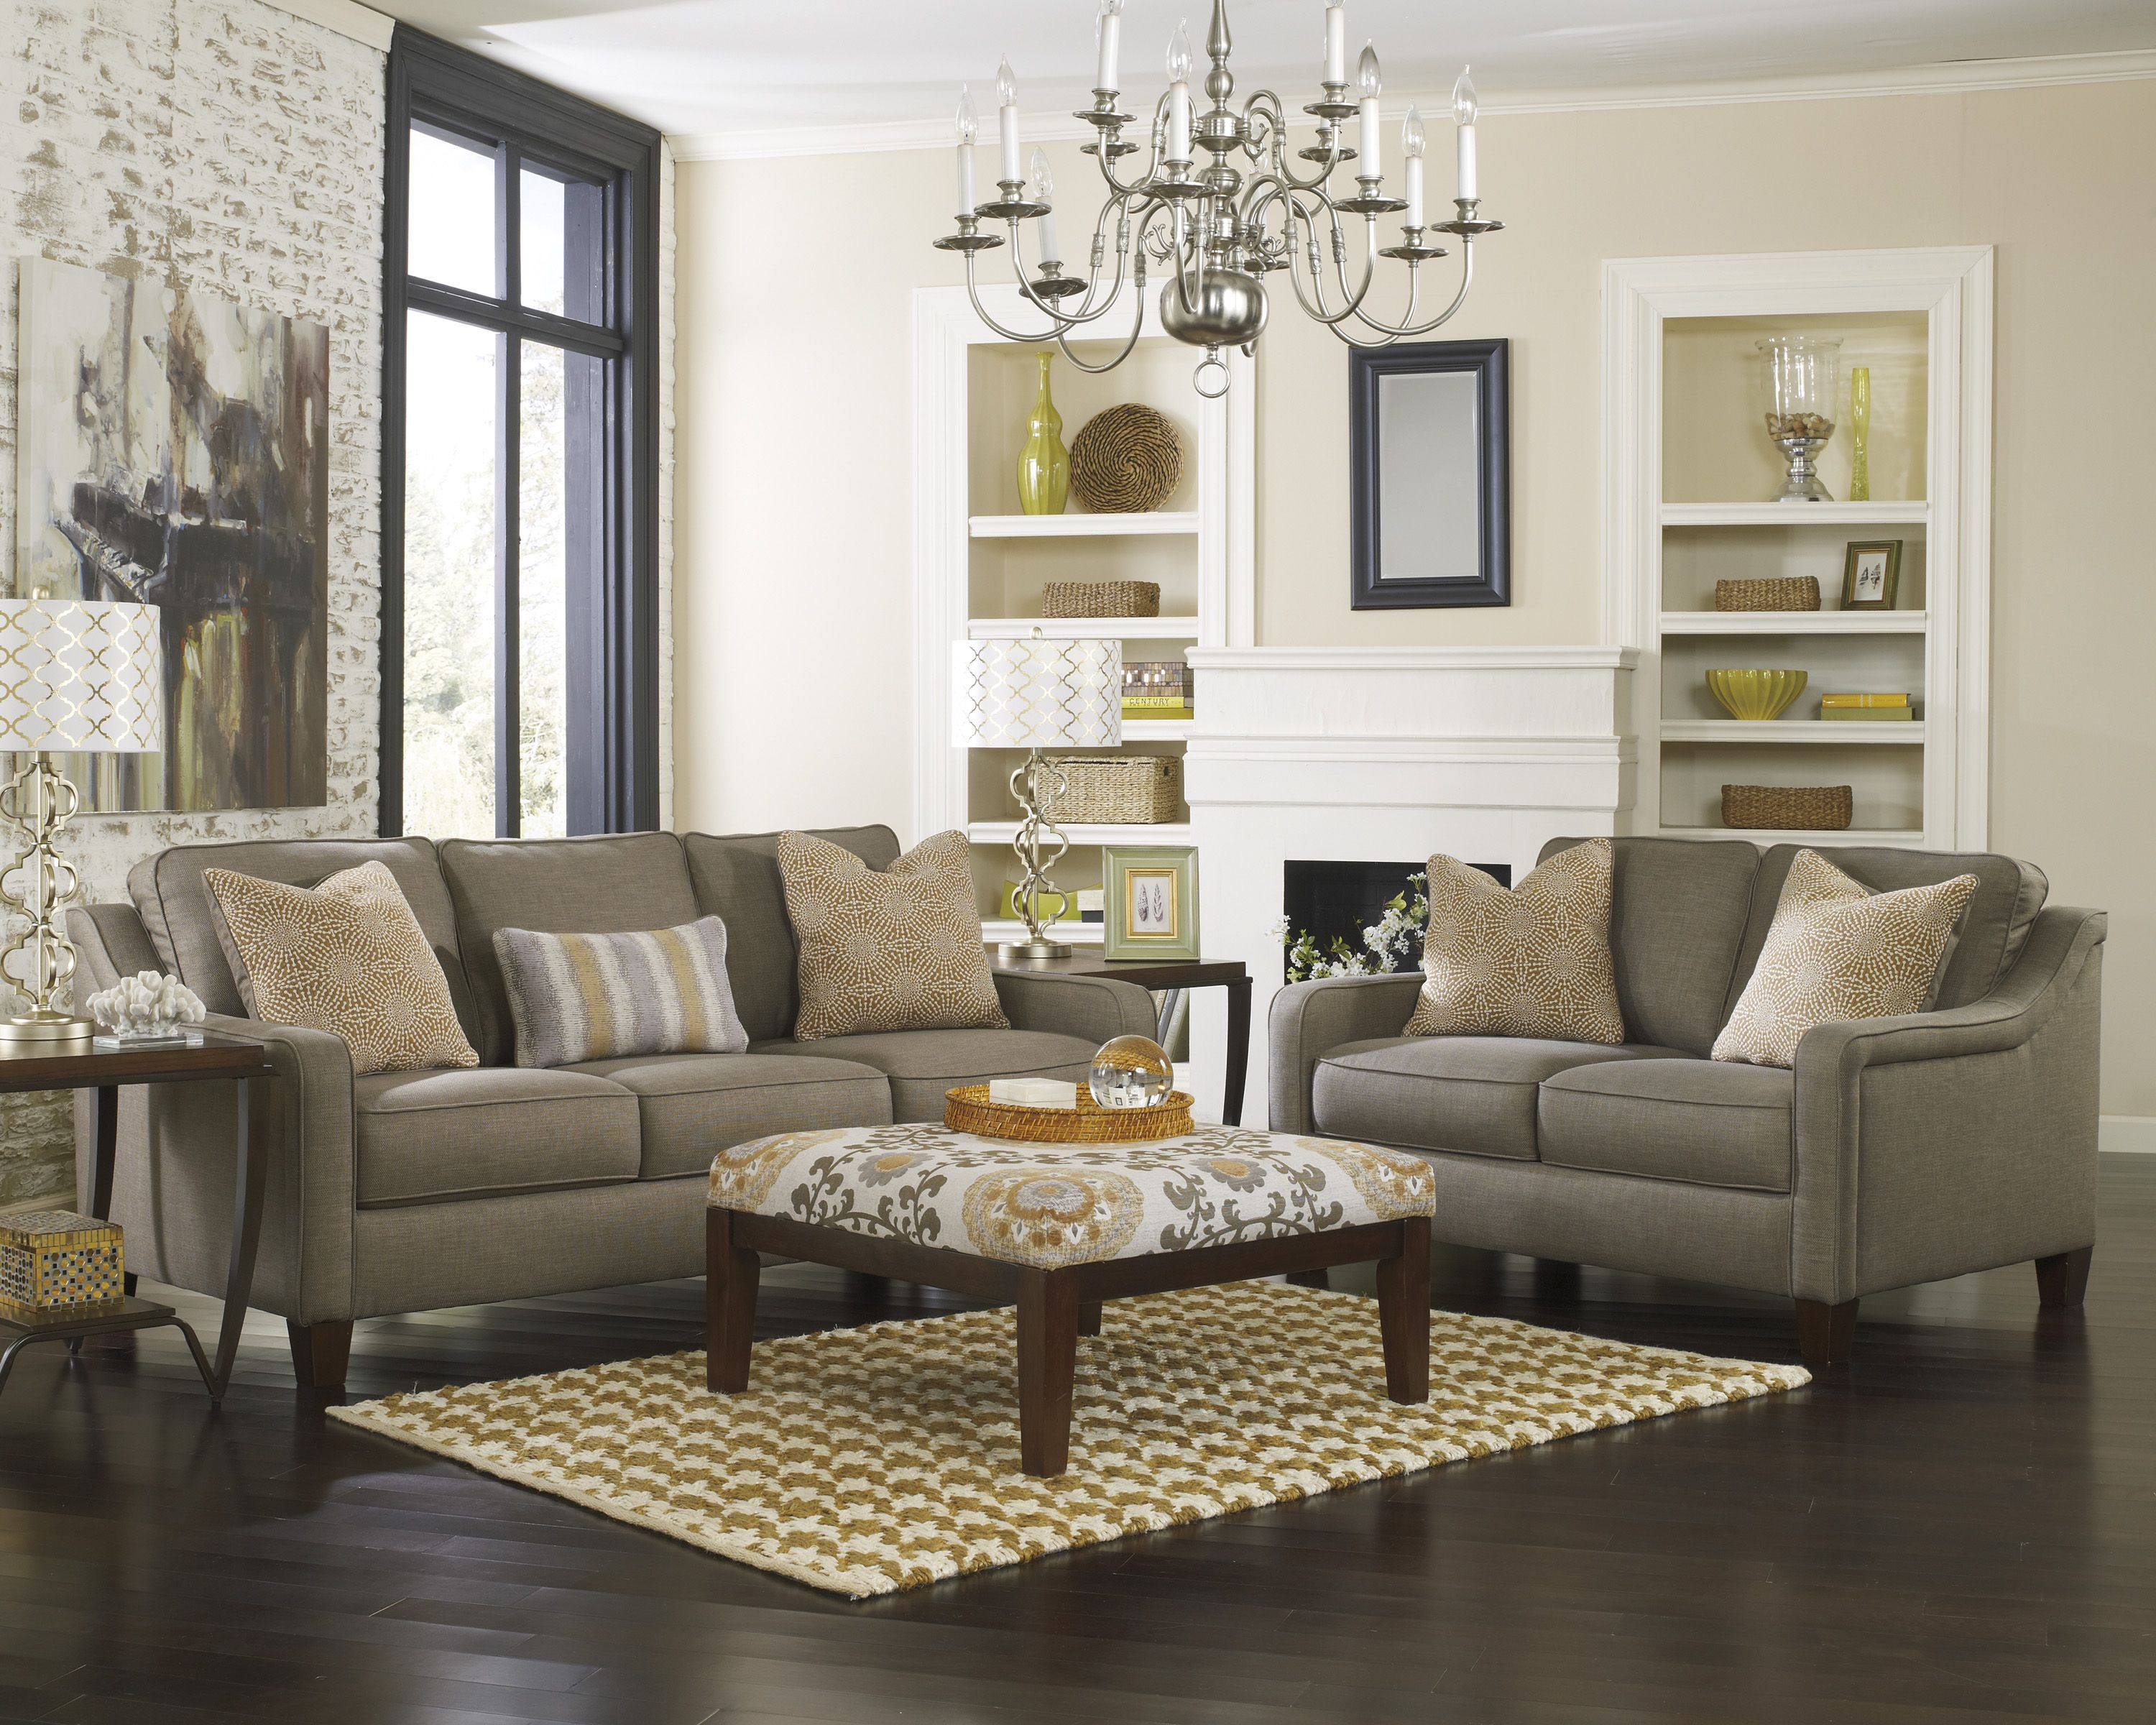 Ashley Furniture 89301 Mena Graphite  Sofas  Sectionals  Pinterest  Furniture